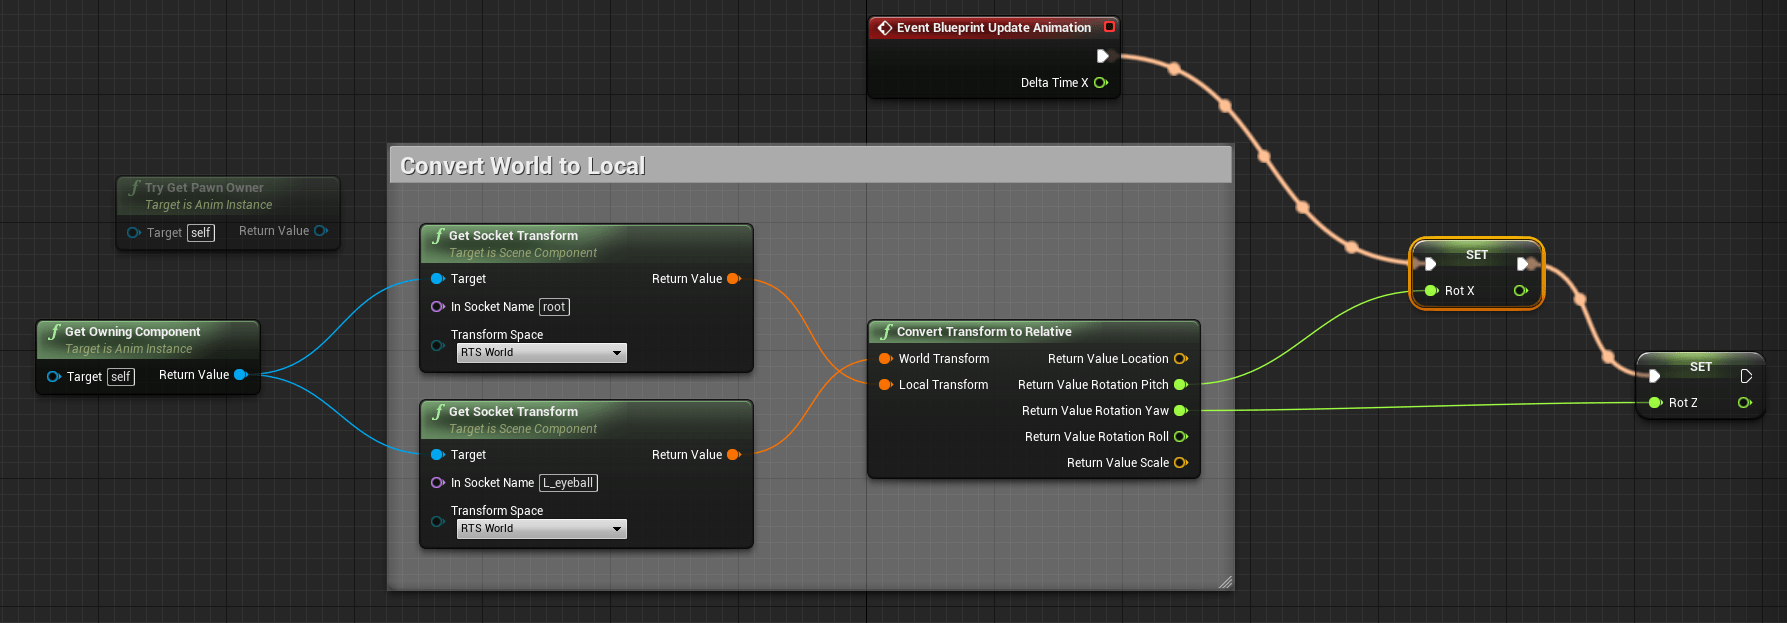 Stumbling toward awesomenesssimple runtime rigging in ue4 image13 malvernweather Gallery